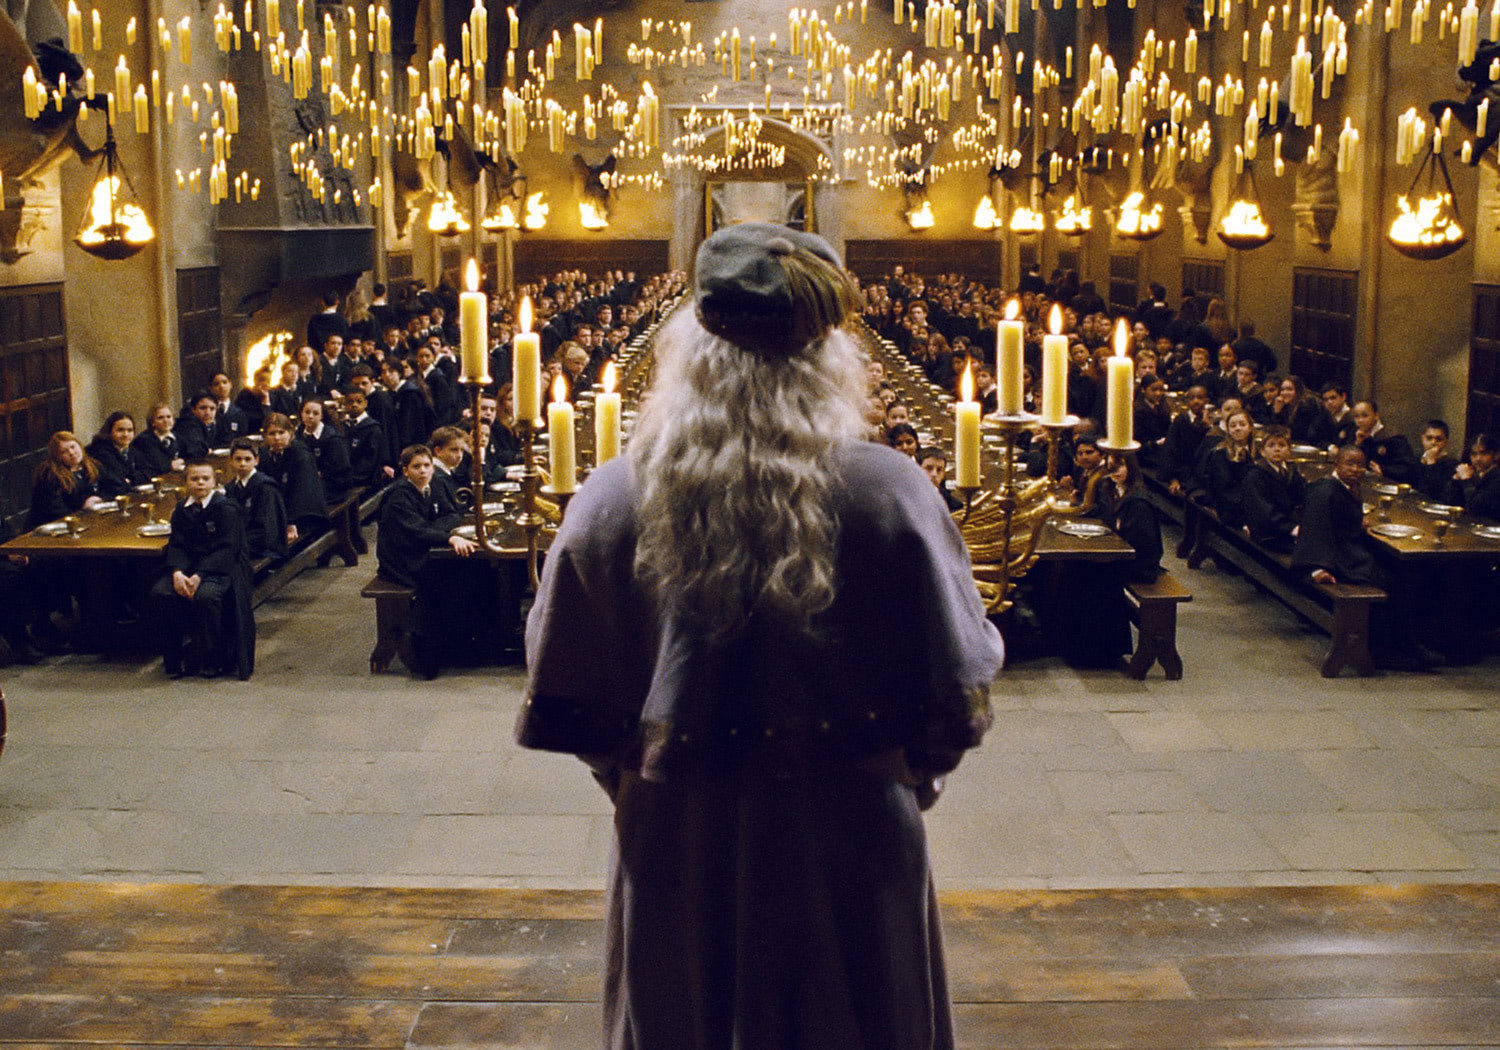 Dumbledore addresses students in the Great Hall